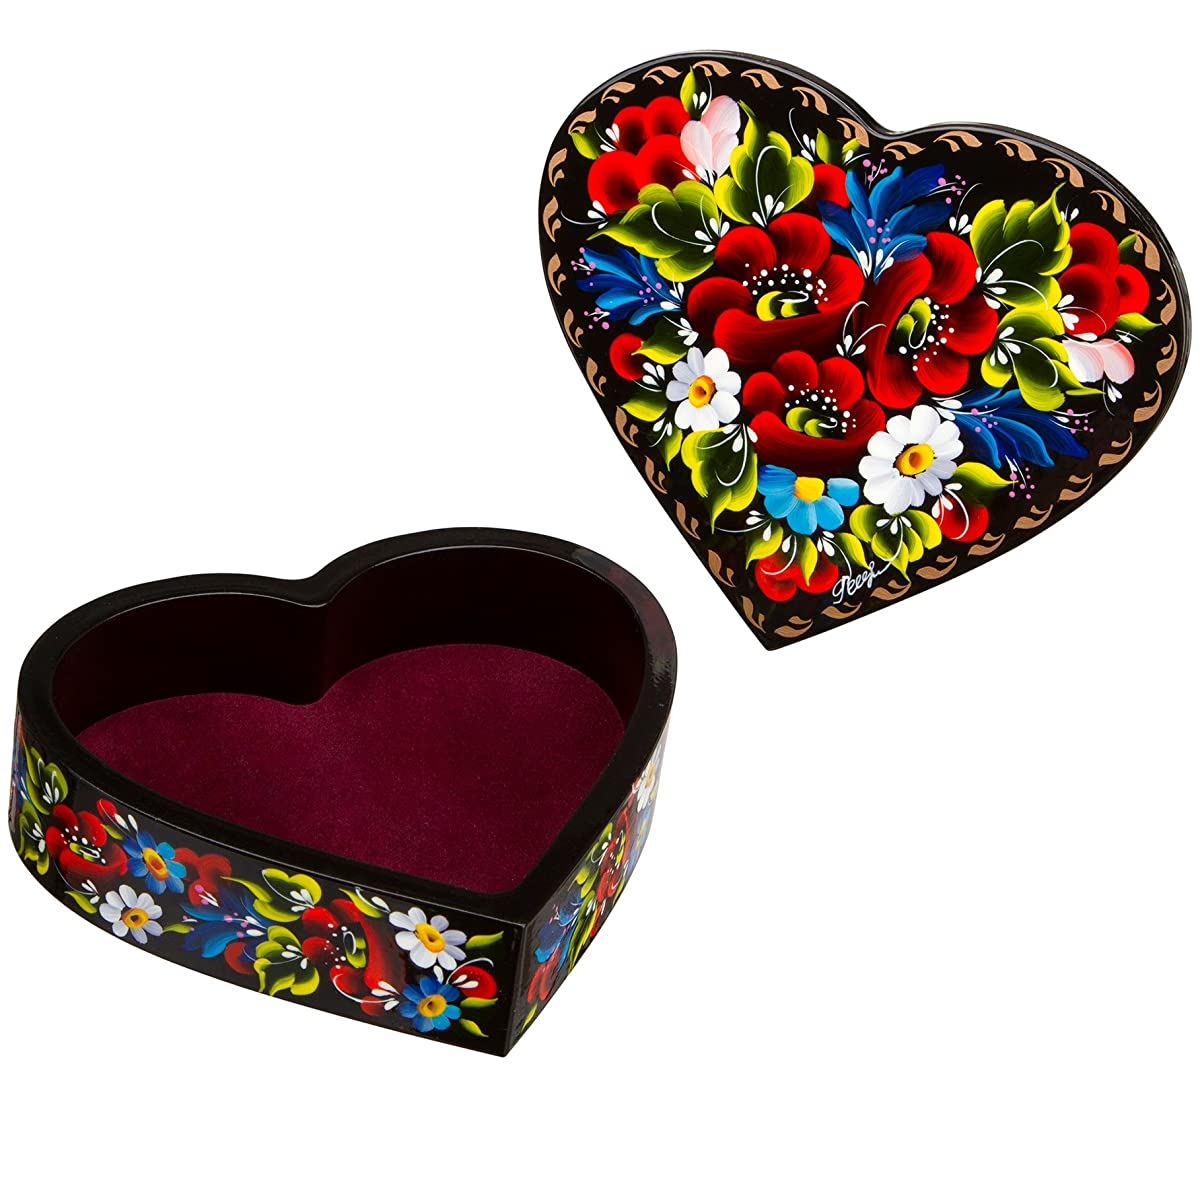 Floral Style Heart-Shaped Lacquer Wooden Jewelry Box Hand Painted in Ukraine